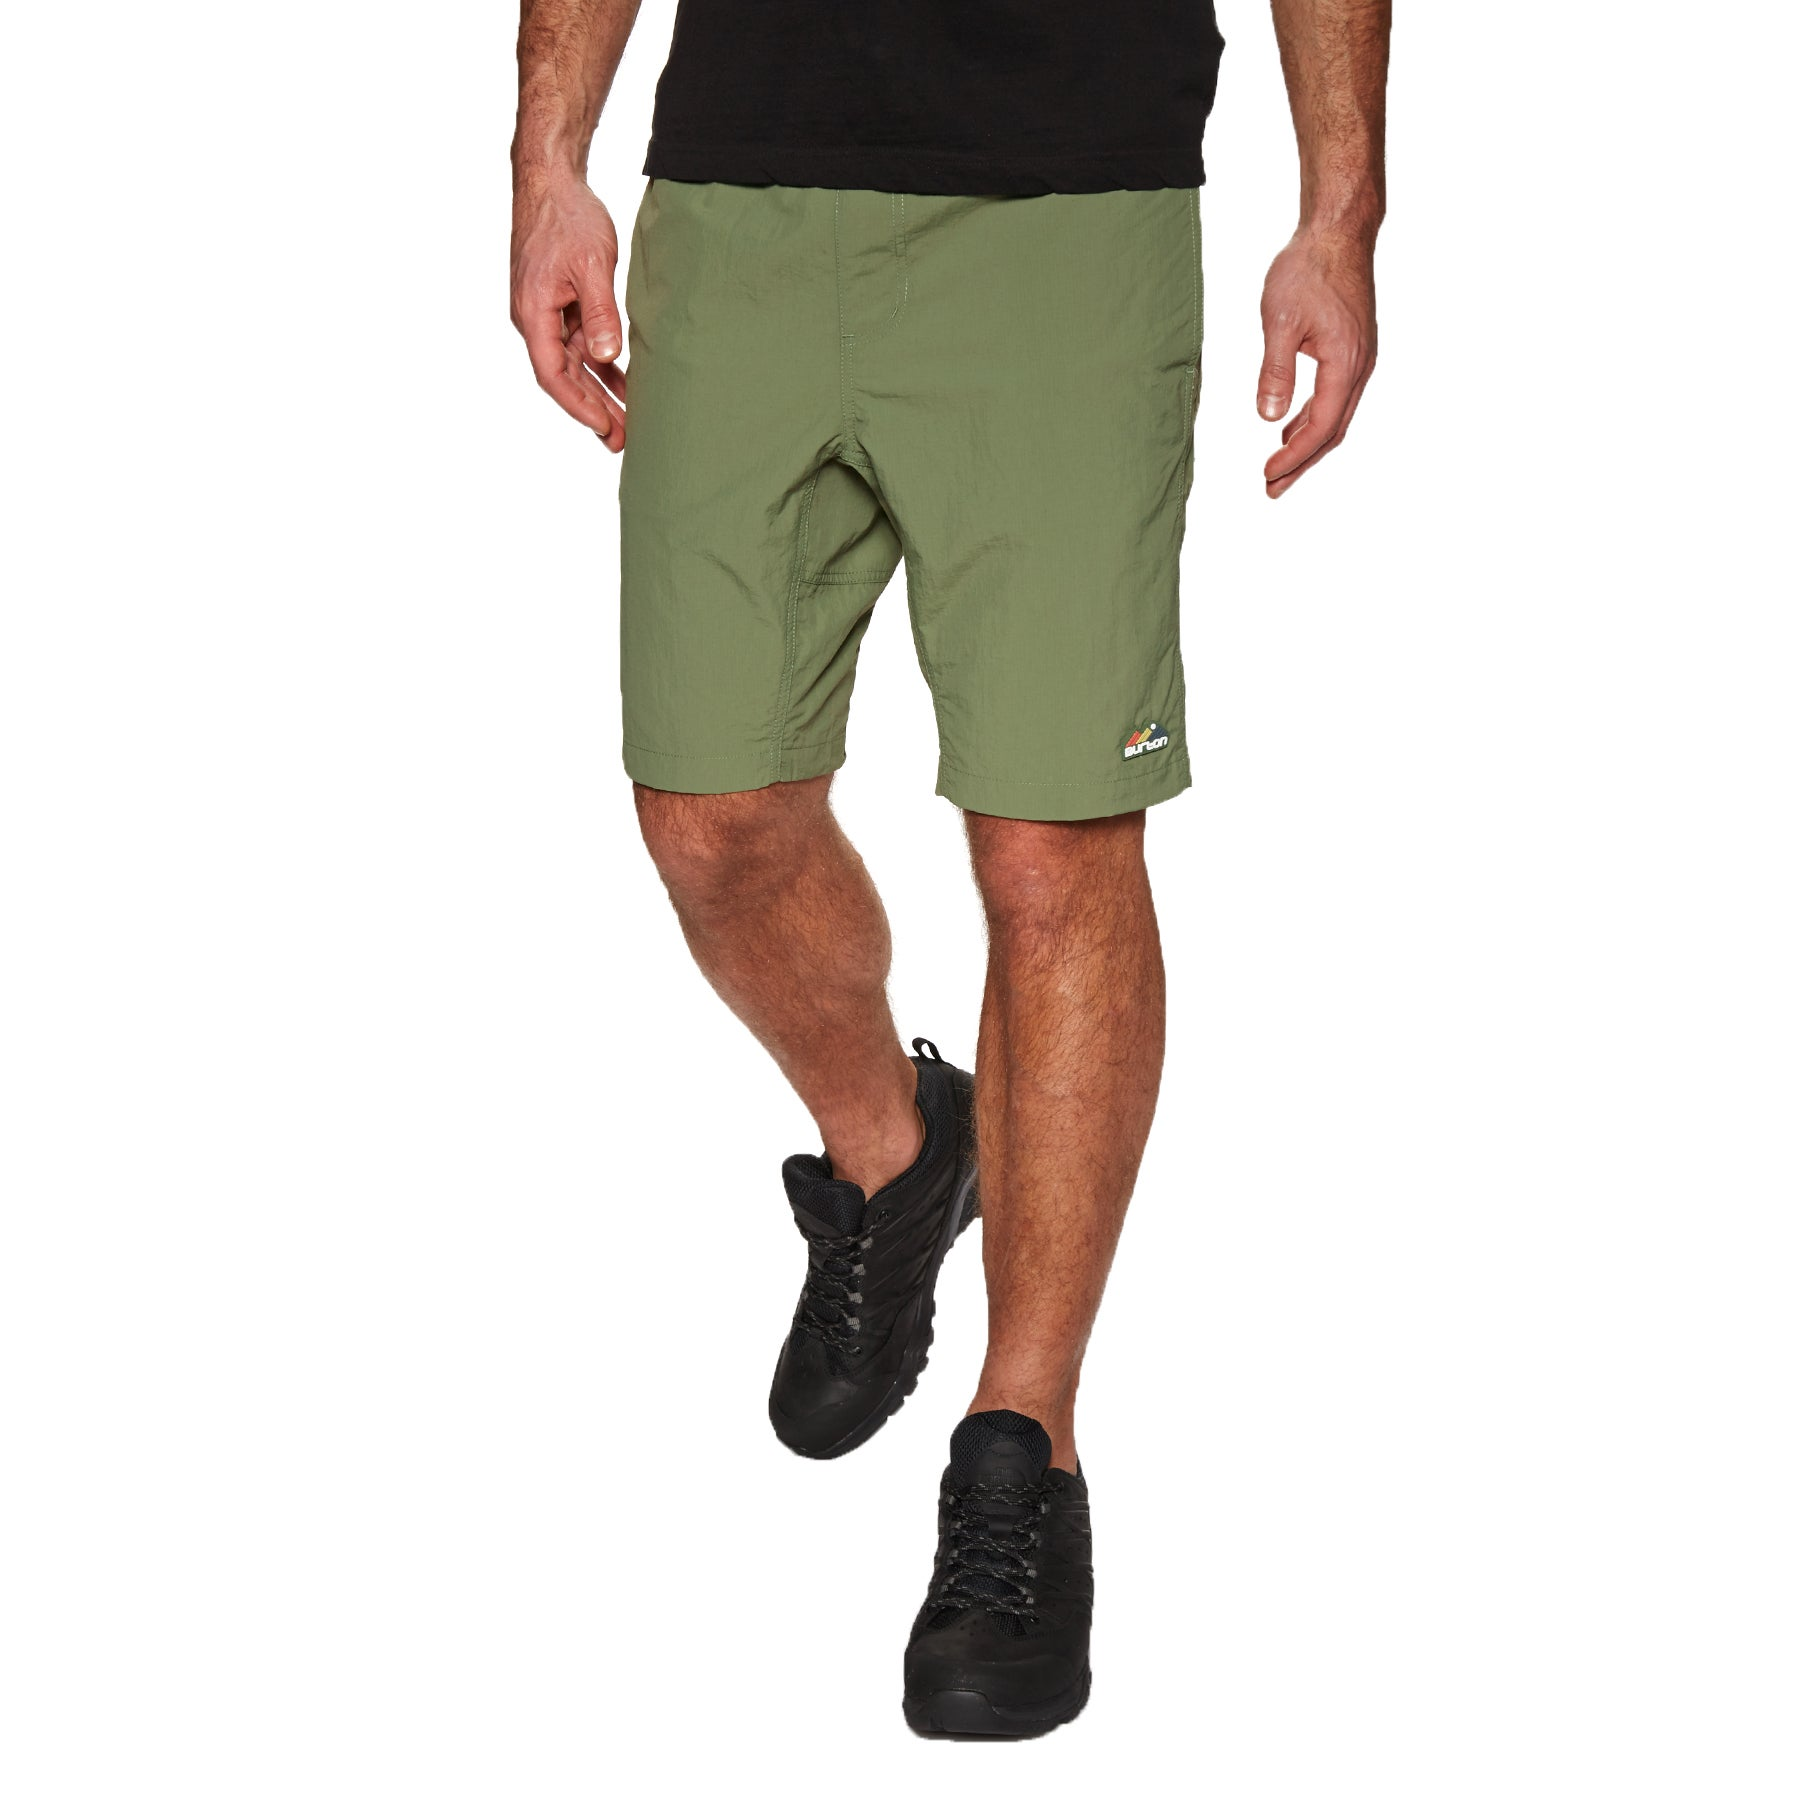 Burton Clingman Walk Shorts - Weeds